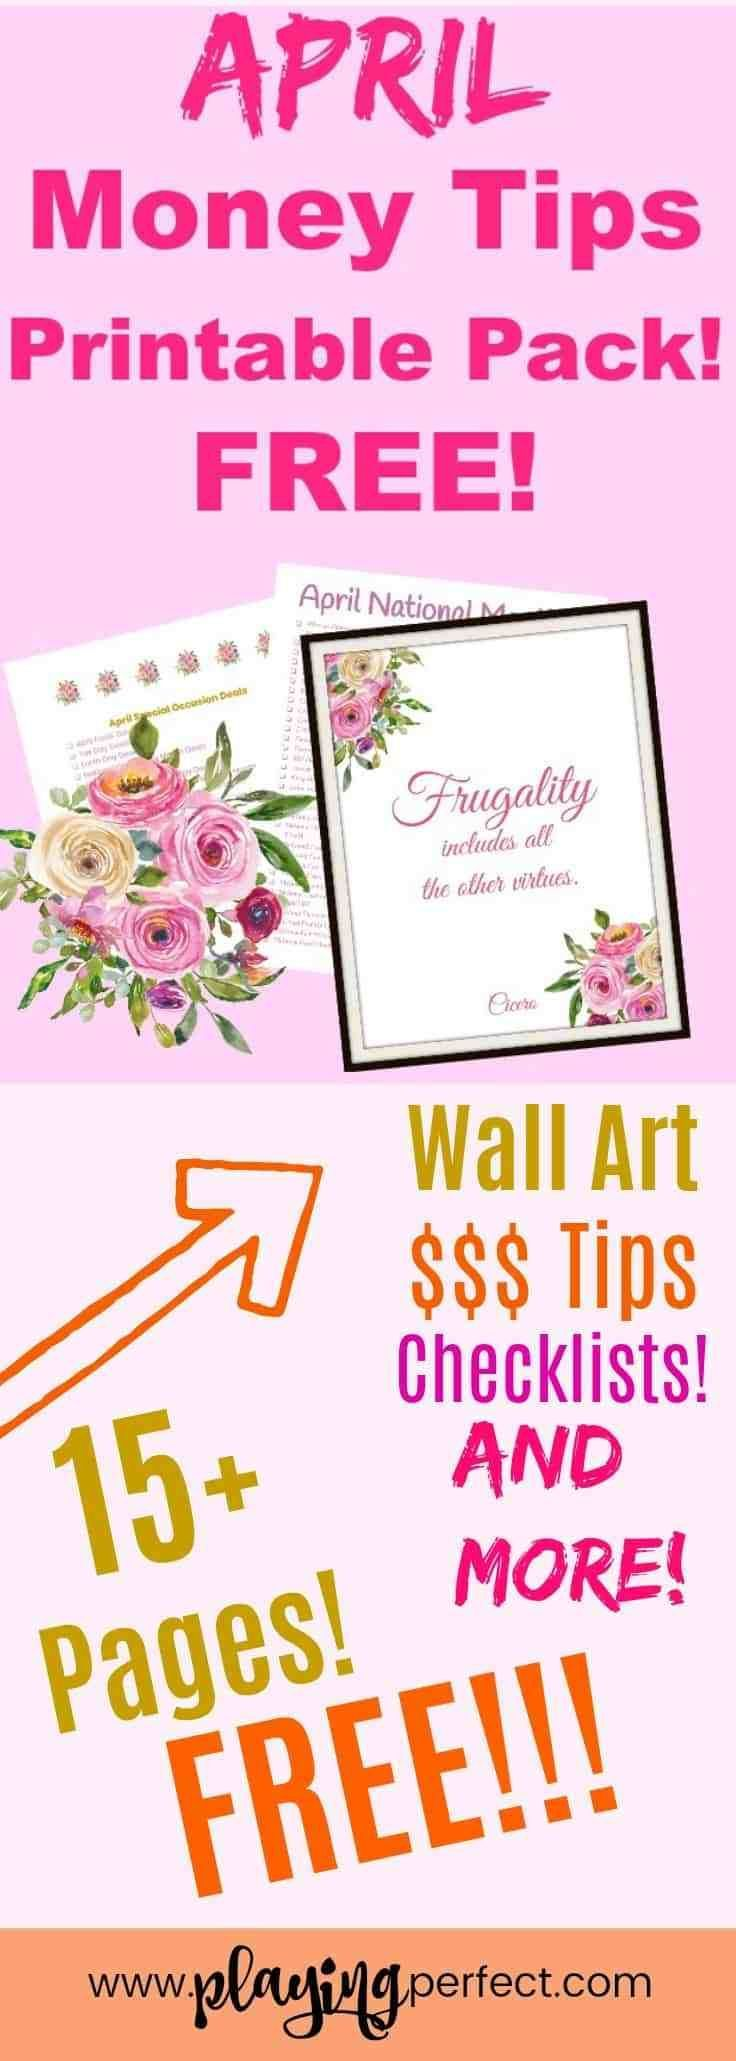 FREE April Money Tips printable pack! 15+ pages to help you with budgeting, saving, and finding financial success in April! Also, check out the post that lists how to find the best bargains in April, save money in April, find April deals, April clearance, April freebies, and more! Grab your FREE April money tips printable pack! | playingperfect.com | #april #finances #playingperfect #freeprintables #budgetprintables #aprilprintables #printables #moneyadvice #moneytips #savings #budgeting